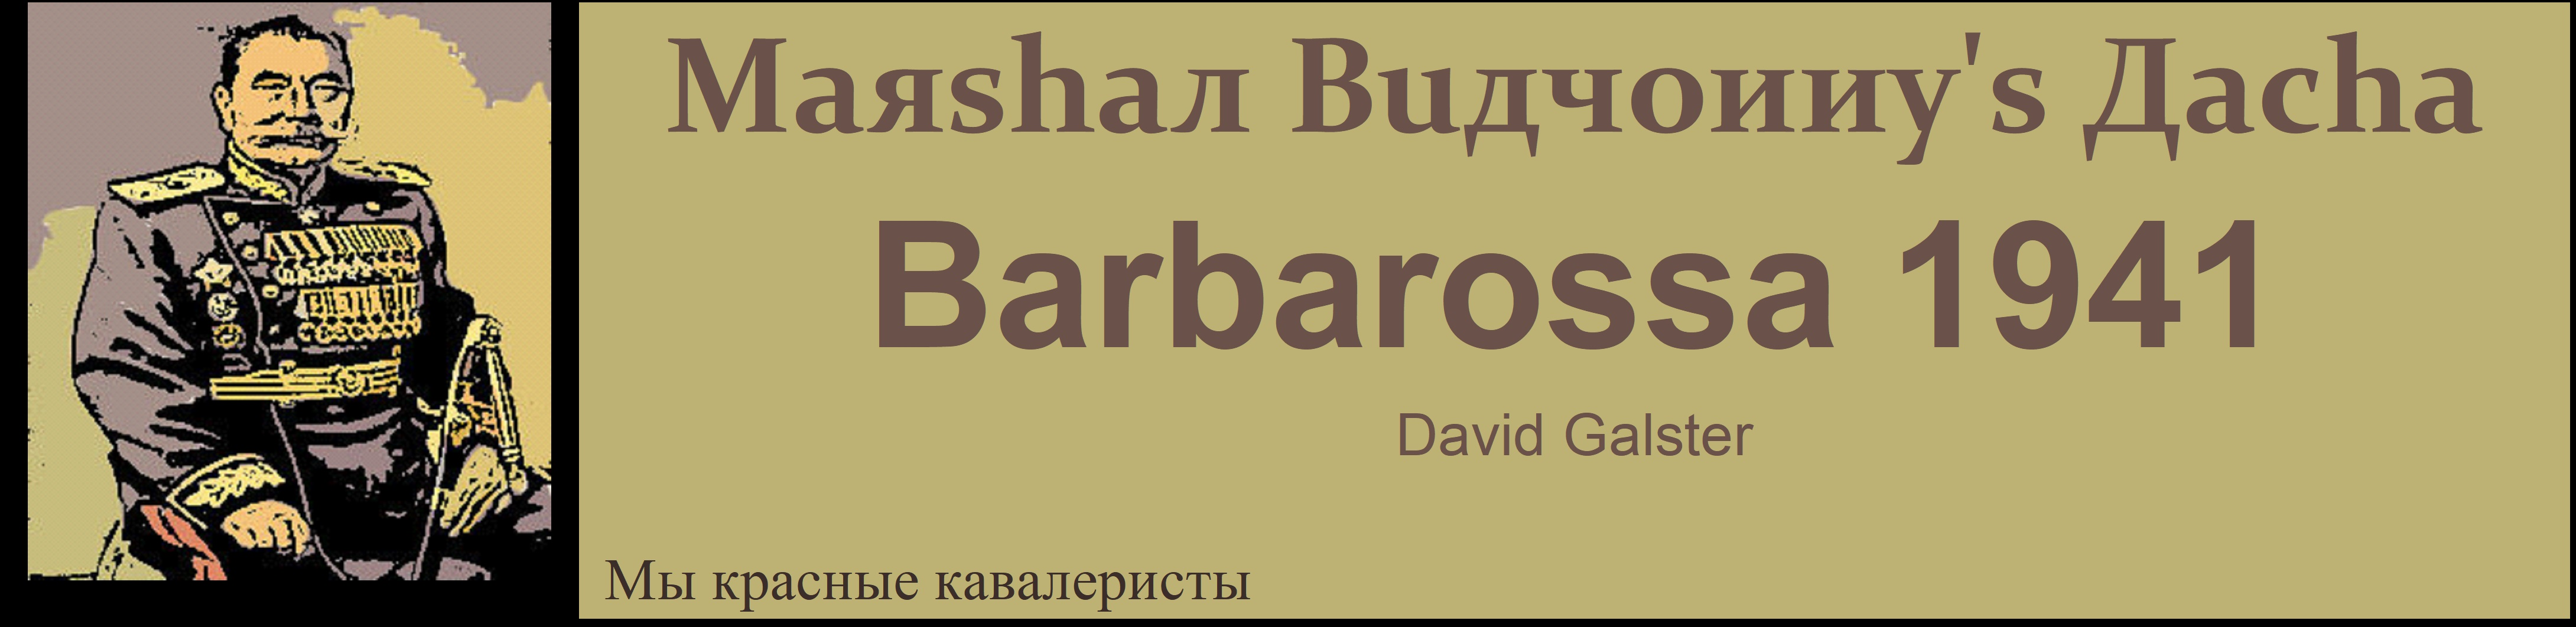 Campaign Series East Front III | Marshall Budyonny's Dacha